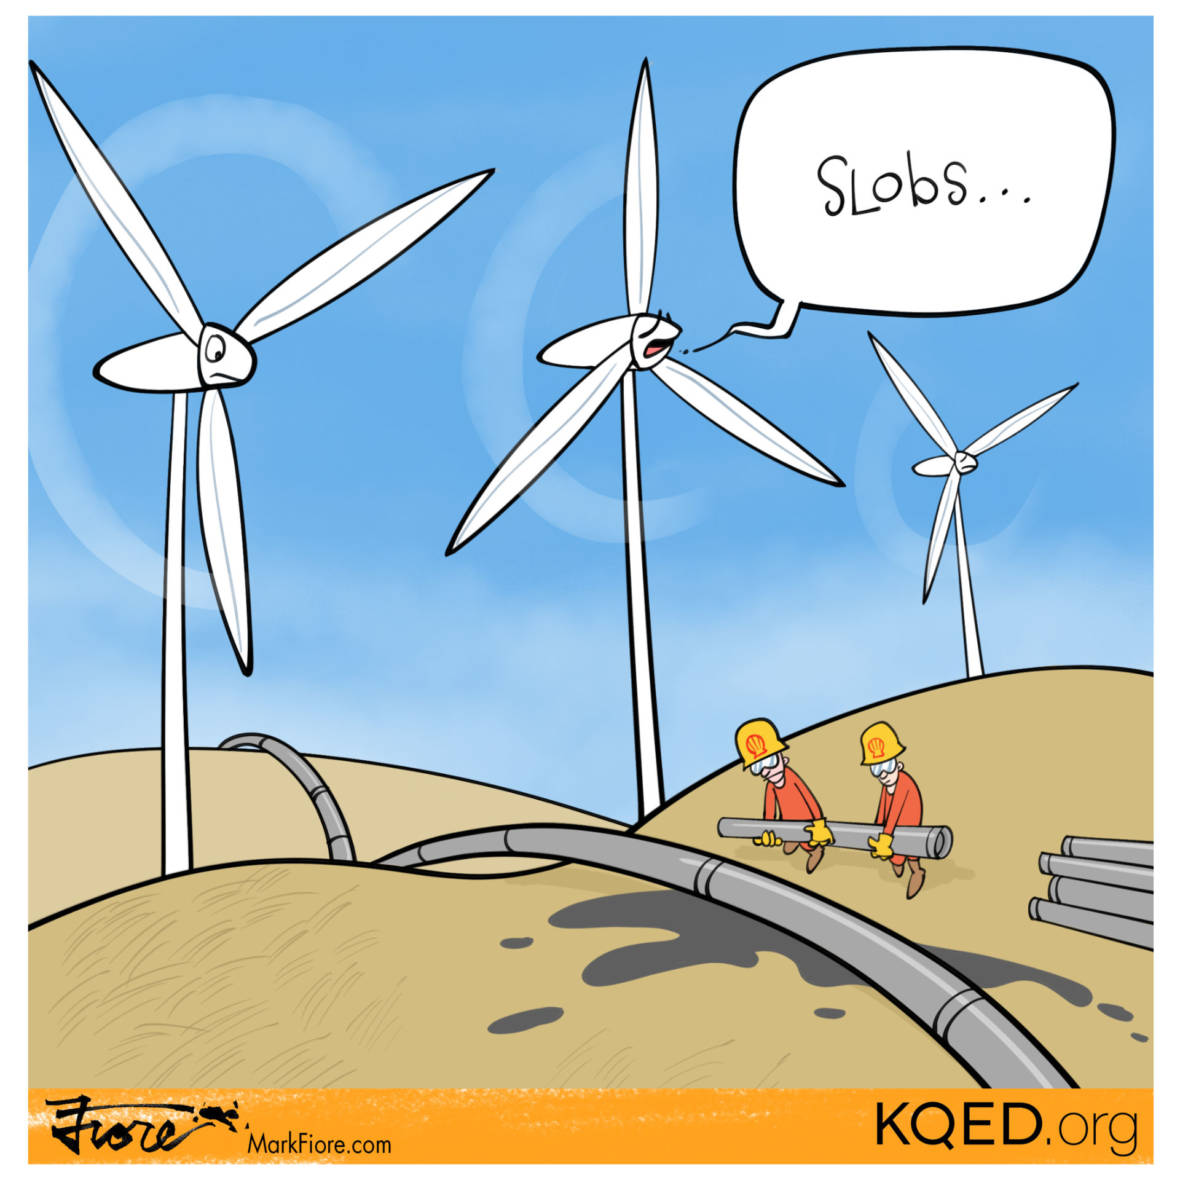 Slobs by Mark Fiore